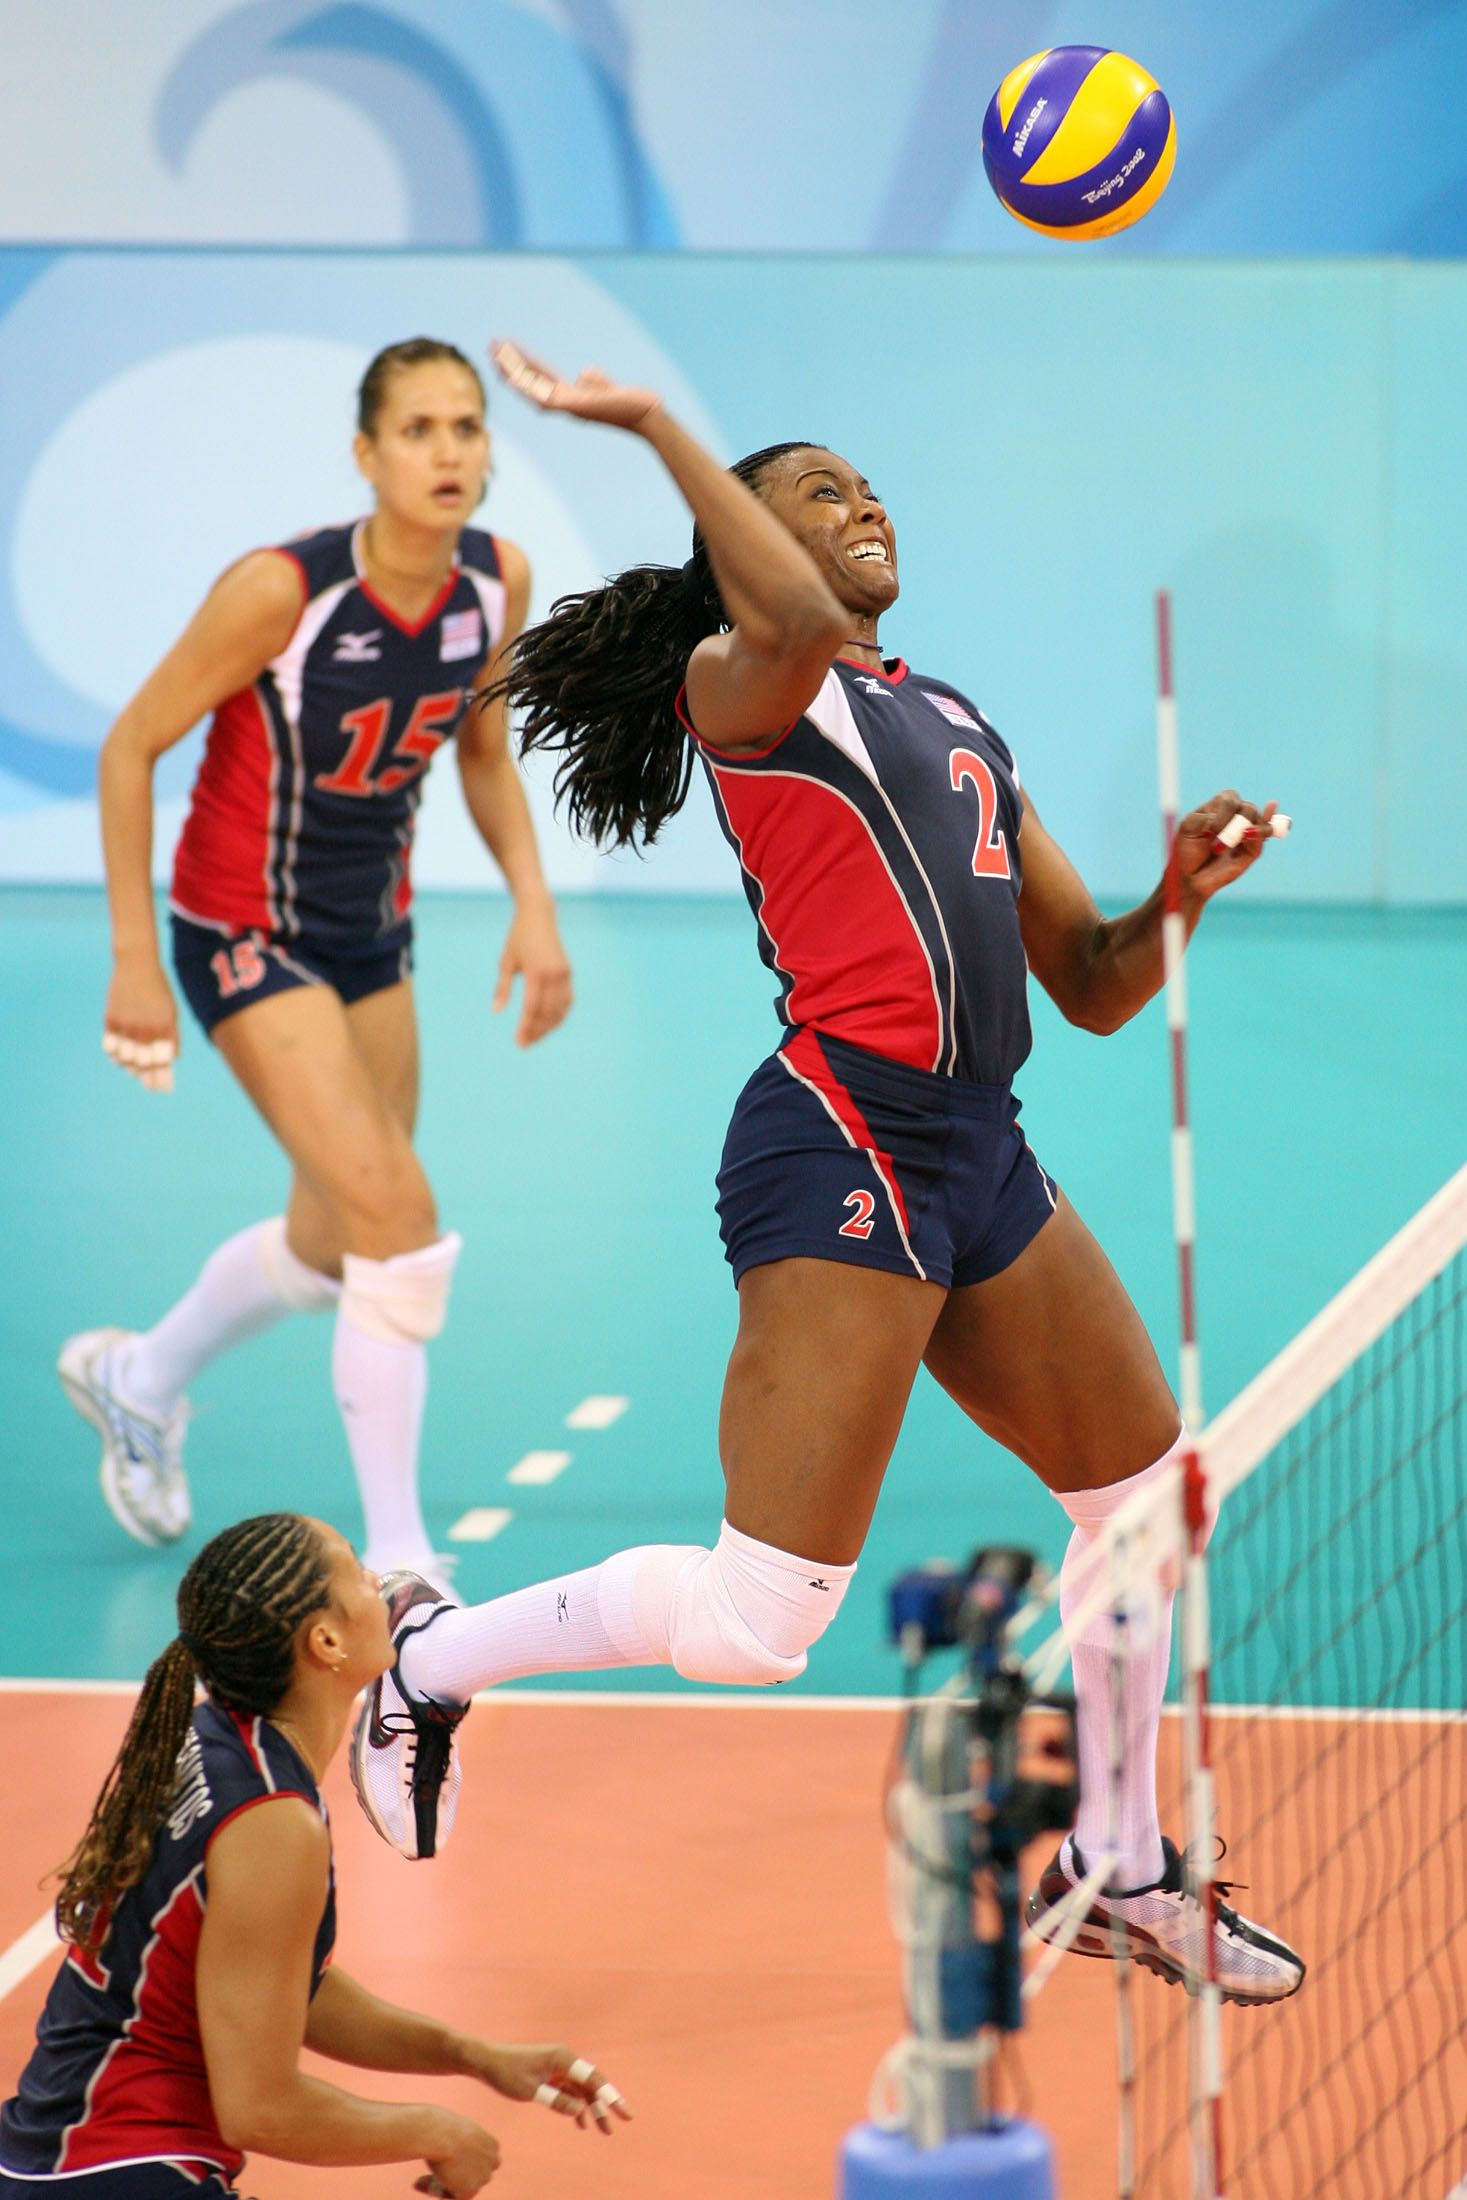 Famous Volleyball Player Profile Quick Facts On Famous Female Players In 2020 Female Volleyball Players Volleyball Players Famous Volleyball Players